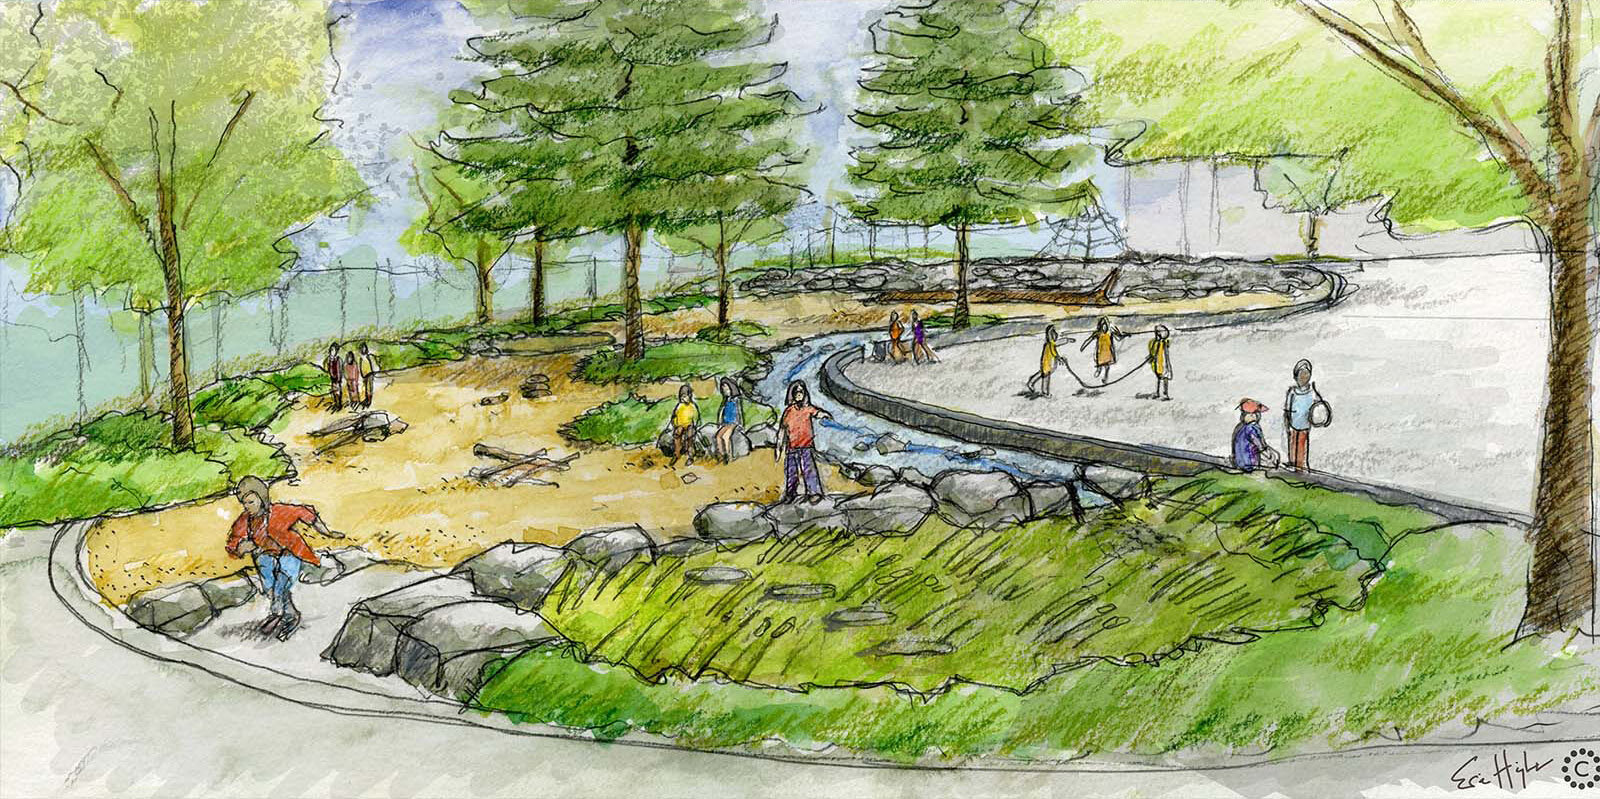 Artist sketch of nature play area